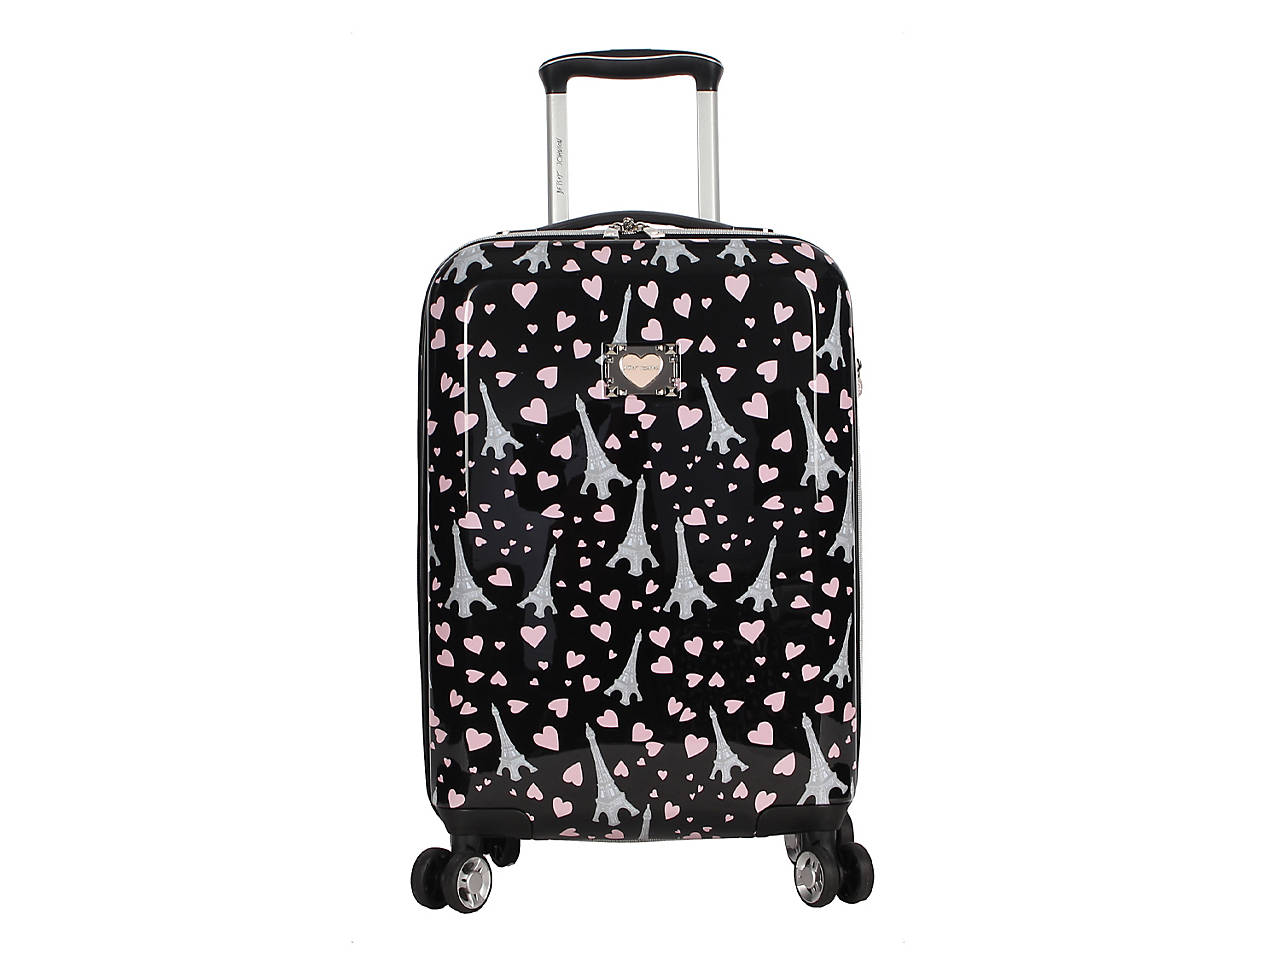 The Best Carry On Wheeled Luggage